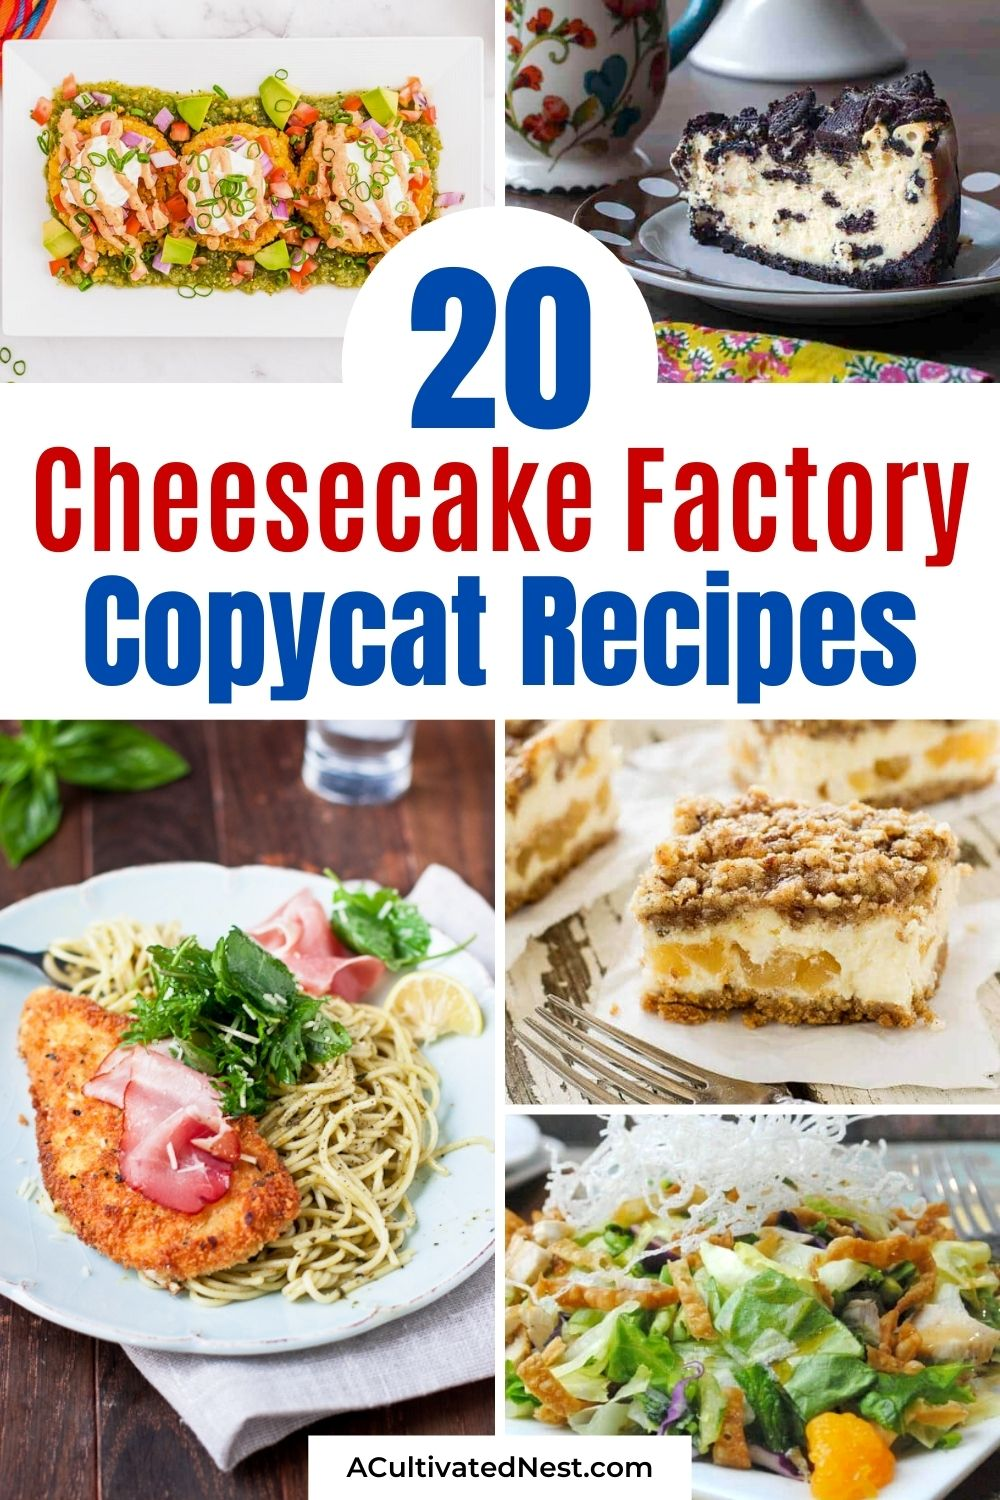 20 Cheesecake Factory Copycat Recipes- If you want to save money but love the Cheesecake Factory, a great way to get your favorite meals on a budget is with these 20 Cheesecake Factory copycat recipes! There are so many tasty copycats to try! | dessert recipes, dinner recipes, #recipes #copycatRecipe #cheesecakeFactory #dinnerIdeas #ACultivatedNest